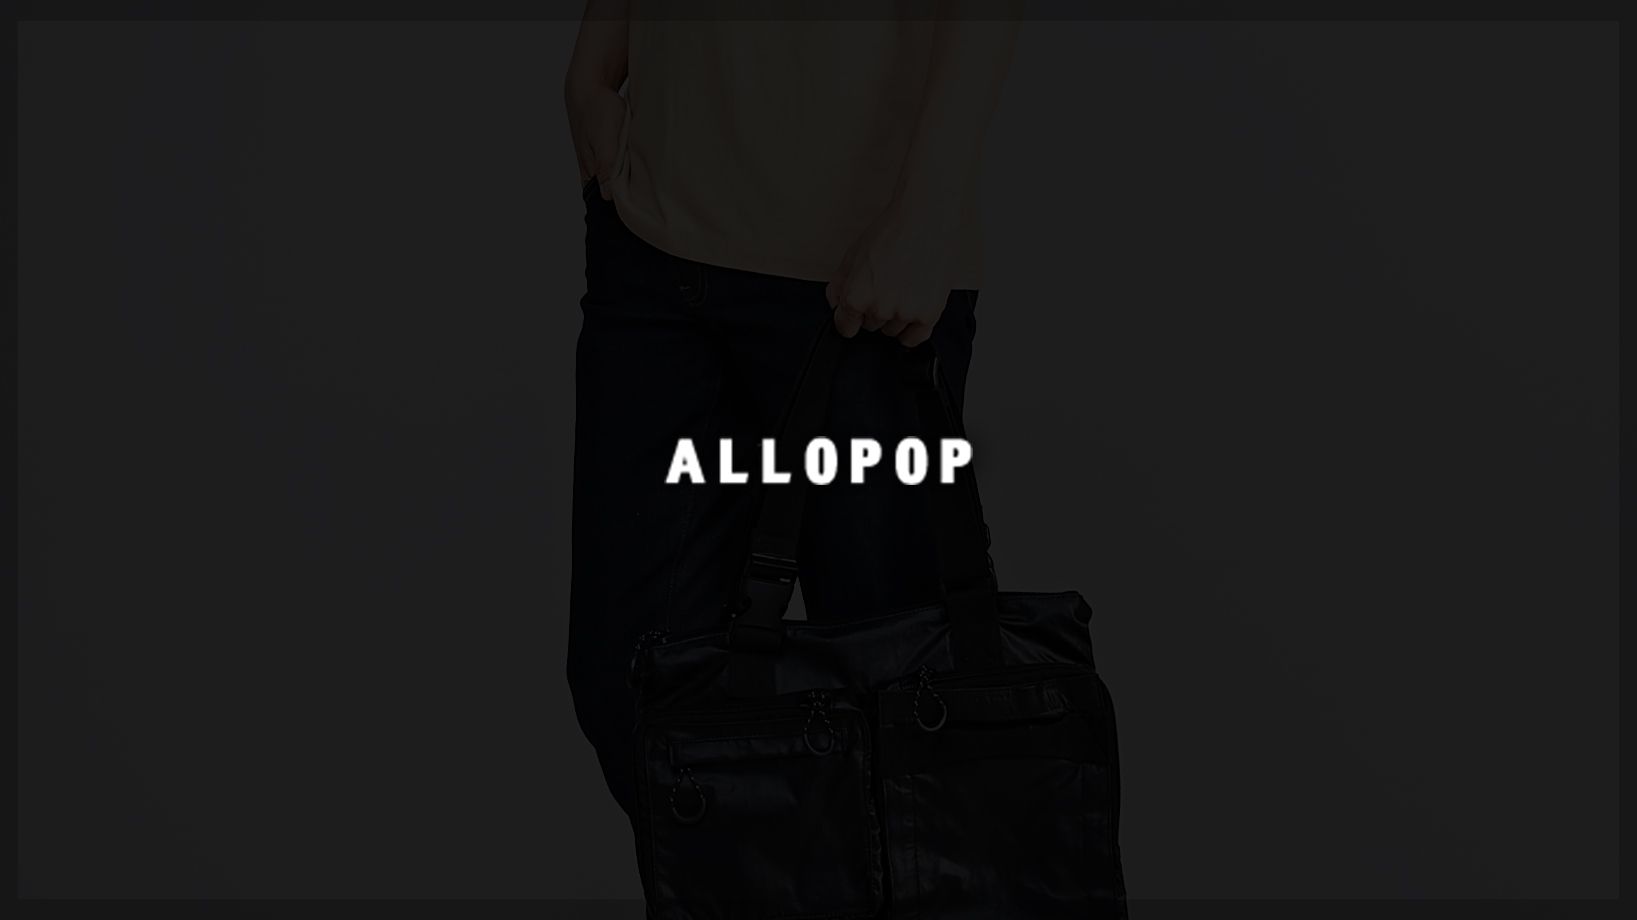 ALLOPOP